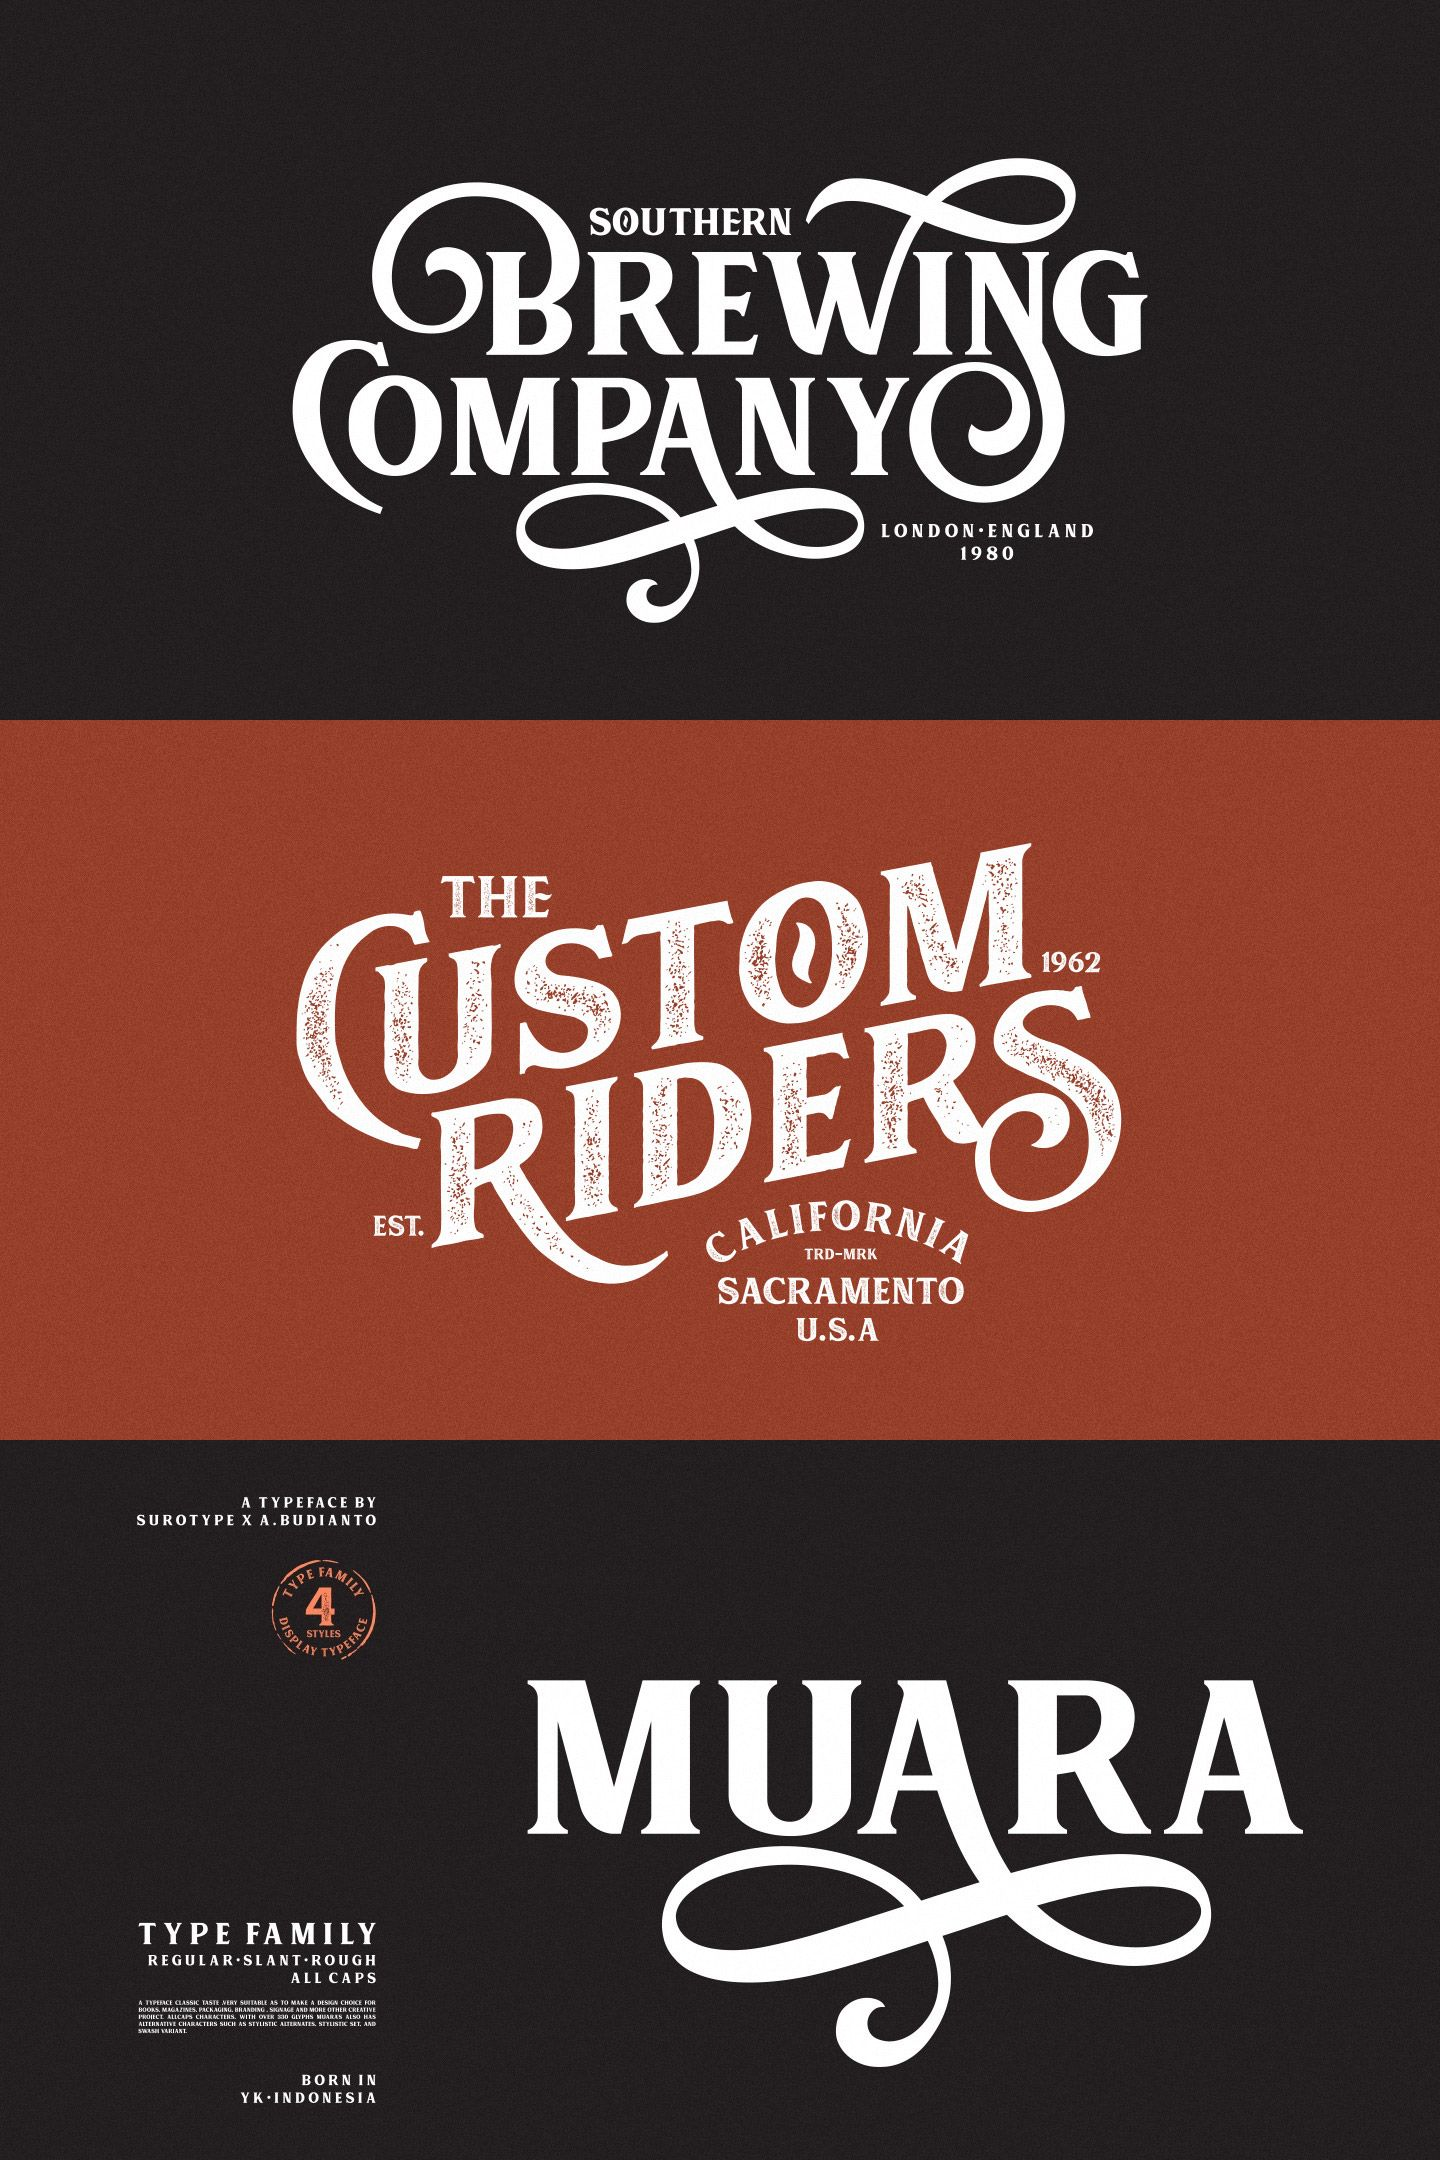 Muara Font A Typeface With A Classic Look Very Suitable To Make A Design Choice For Books Magazines P Lettering Design Brewery Logo Design Lettering Fonts